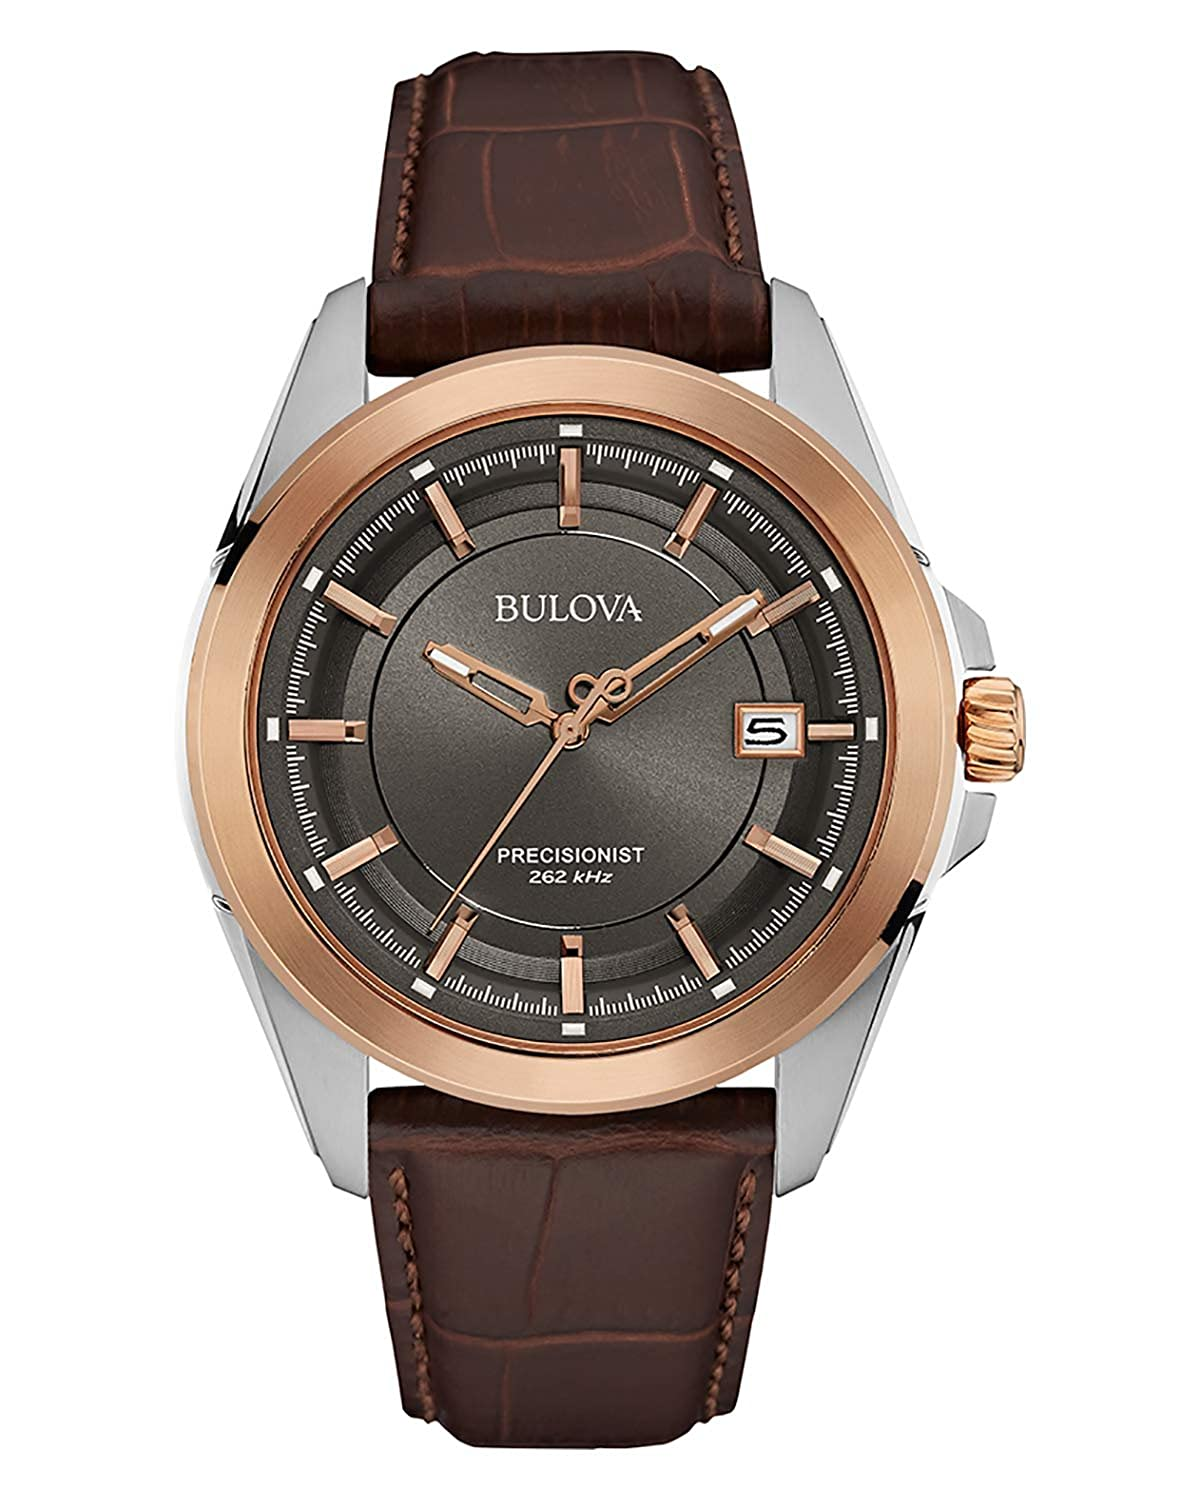 8ae7bd72344 Amazon.com  Bulova Men s 98B267 Stainless Steel Dress Watch With Brown  Leather Band  Bulova  Watches